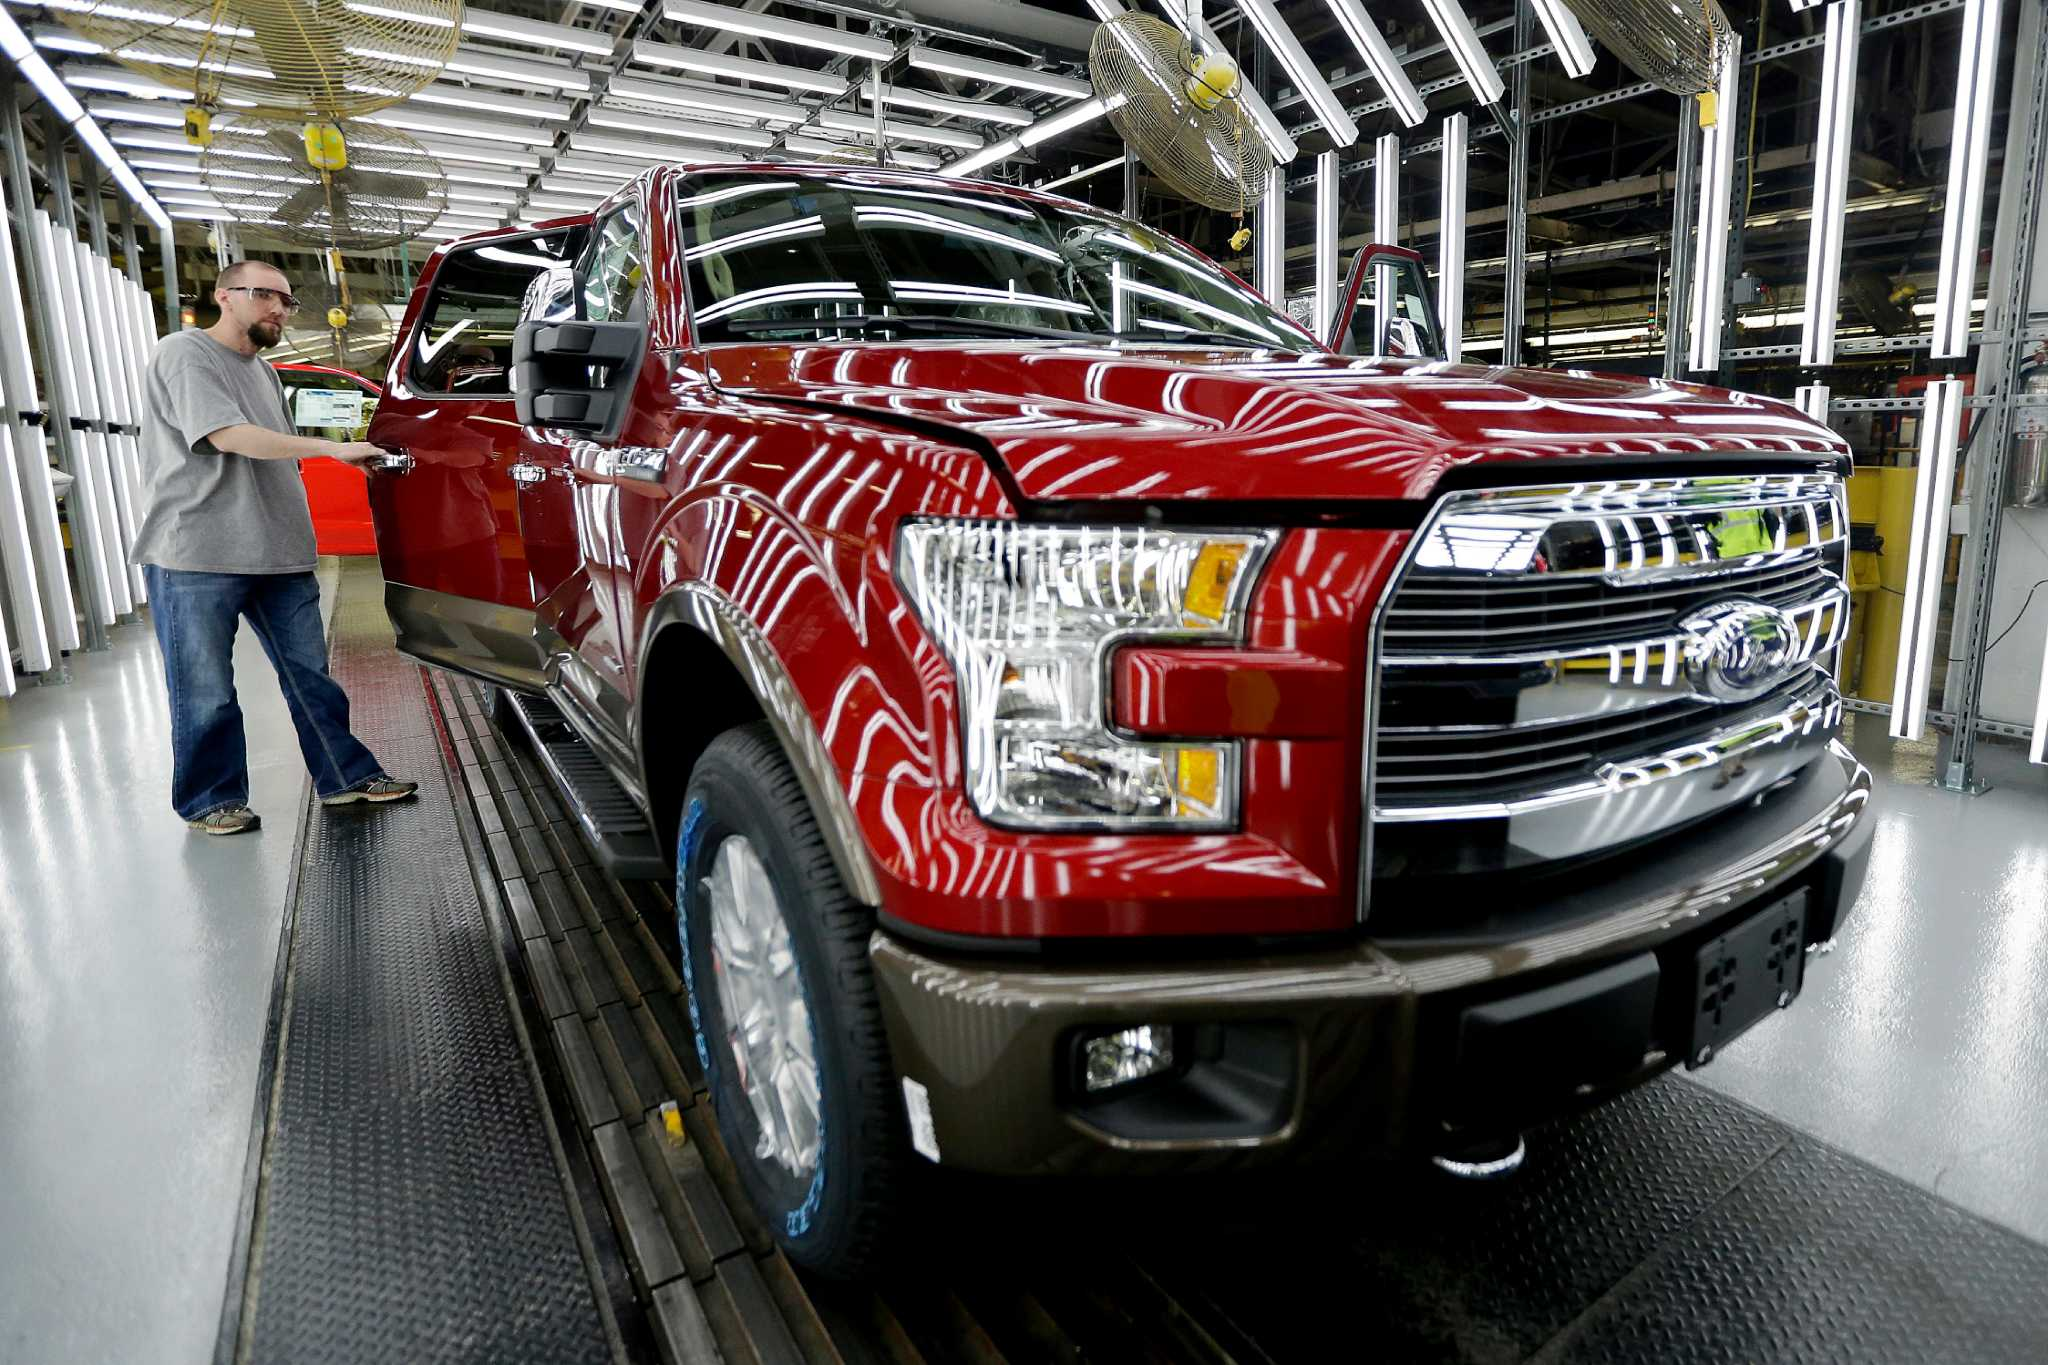 Though many jobs lost, millions of cars still made in America